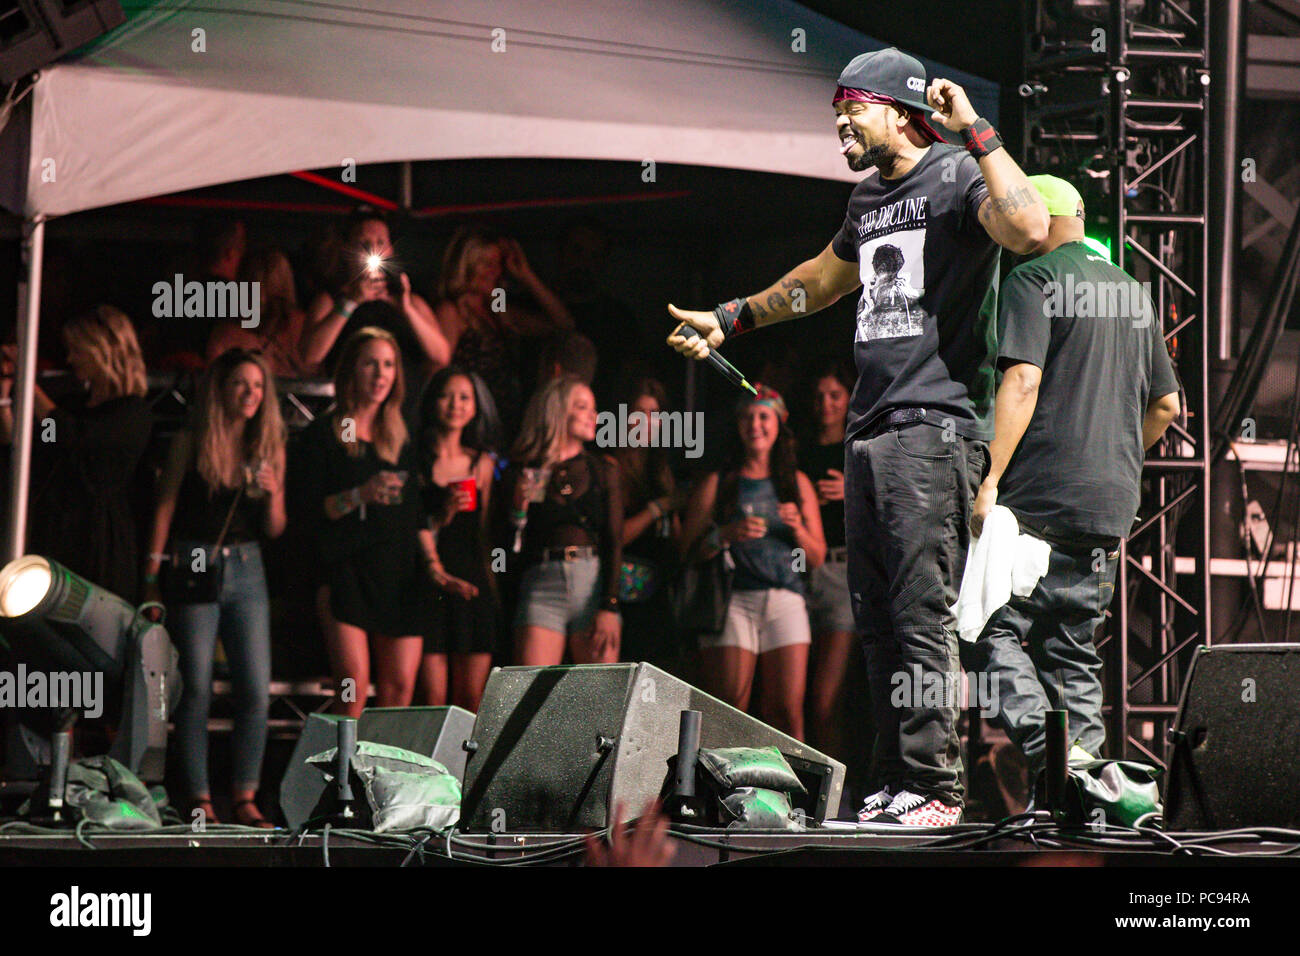 Vancouver, BC / Canada - July 28th 2018: American rap group Wu-Tang Clan performing at Center Of Gravity festival in Kelowna, BC - Stock Image